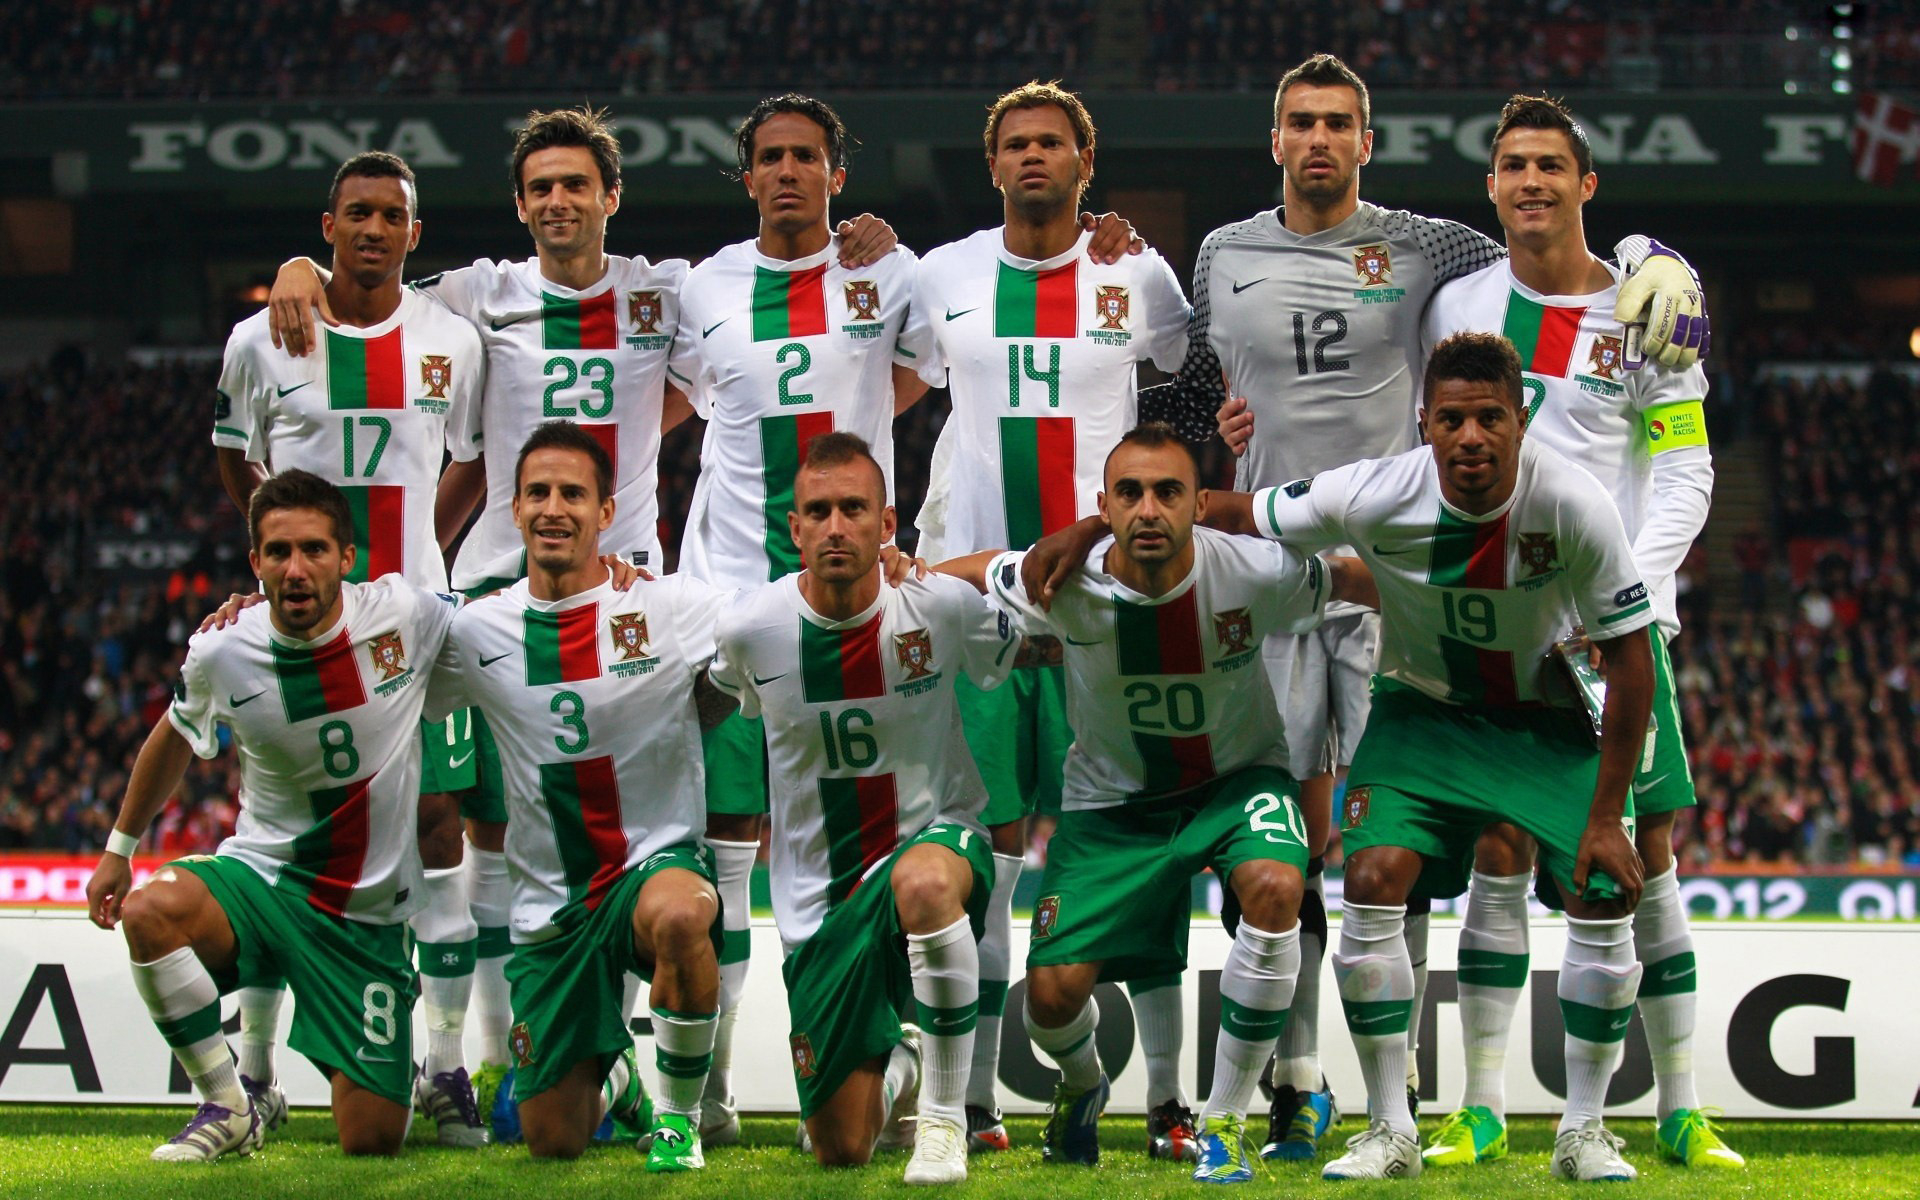 Team Portugal Euro 2012 wallpapers and images 1920x1200